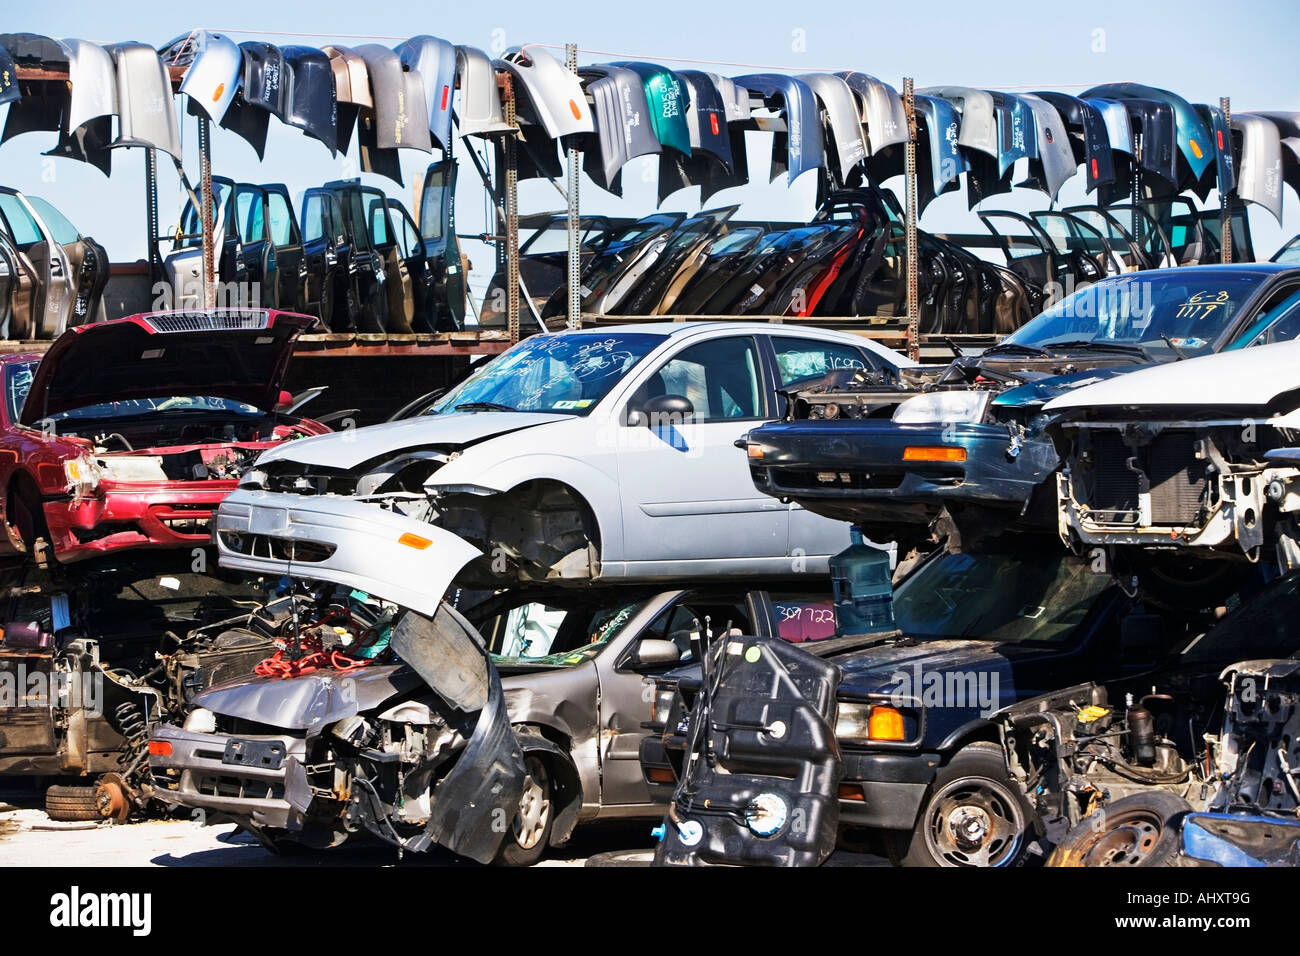 Cars Parts Stock Photos & Cars Parts Stock Images - Alamy